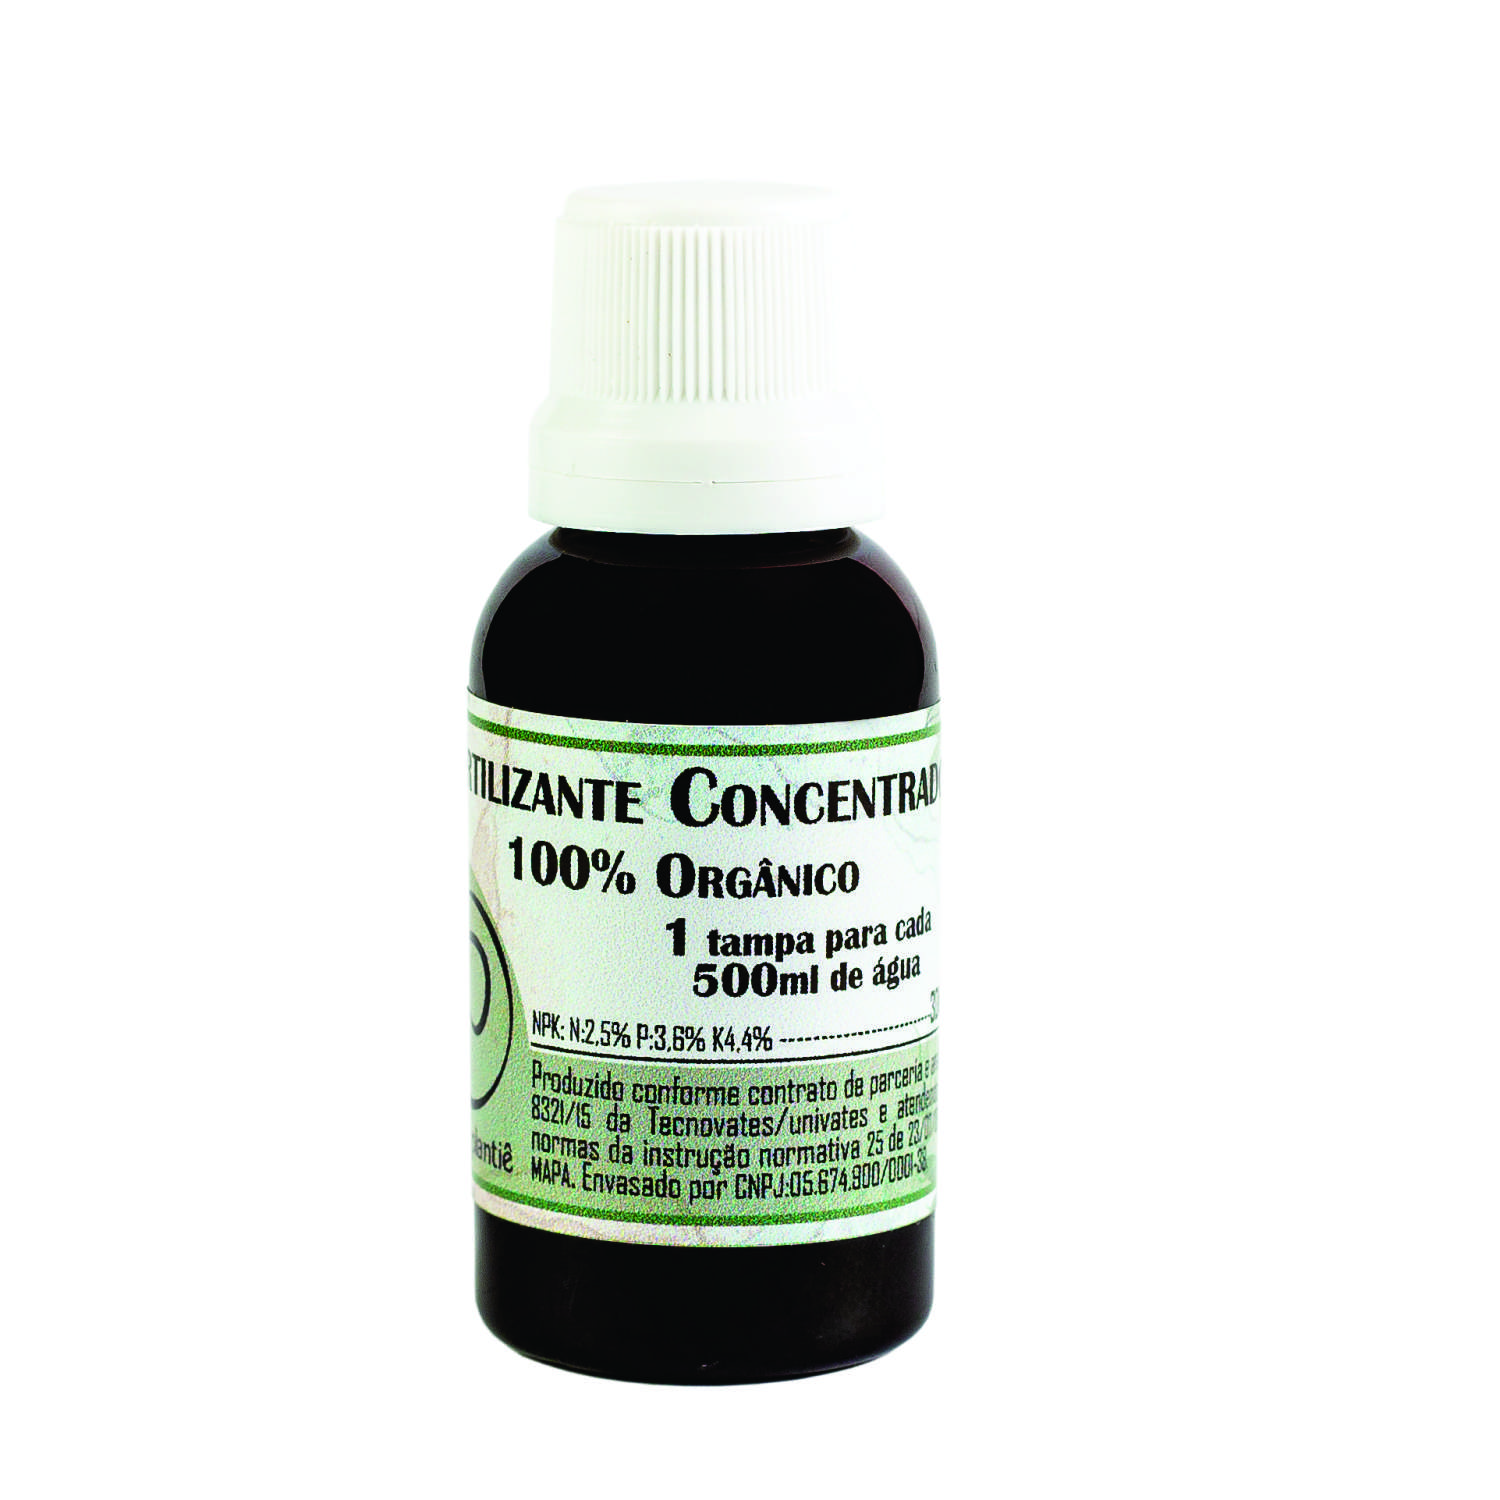 FERTILIZANTE CONCENTRADO 100% ORGÂNICO - 30ml.